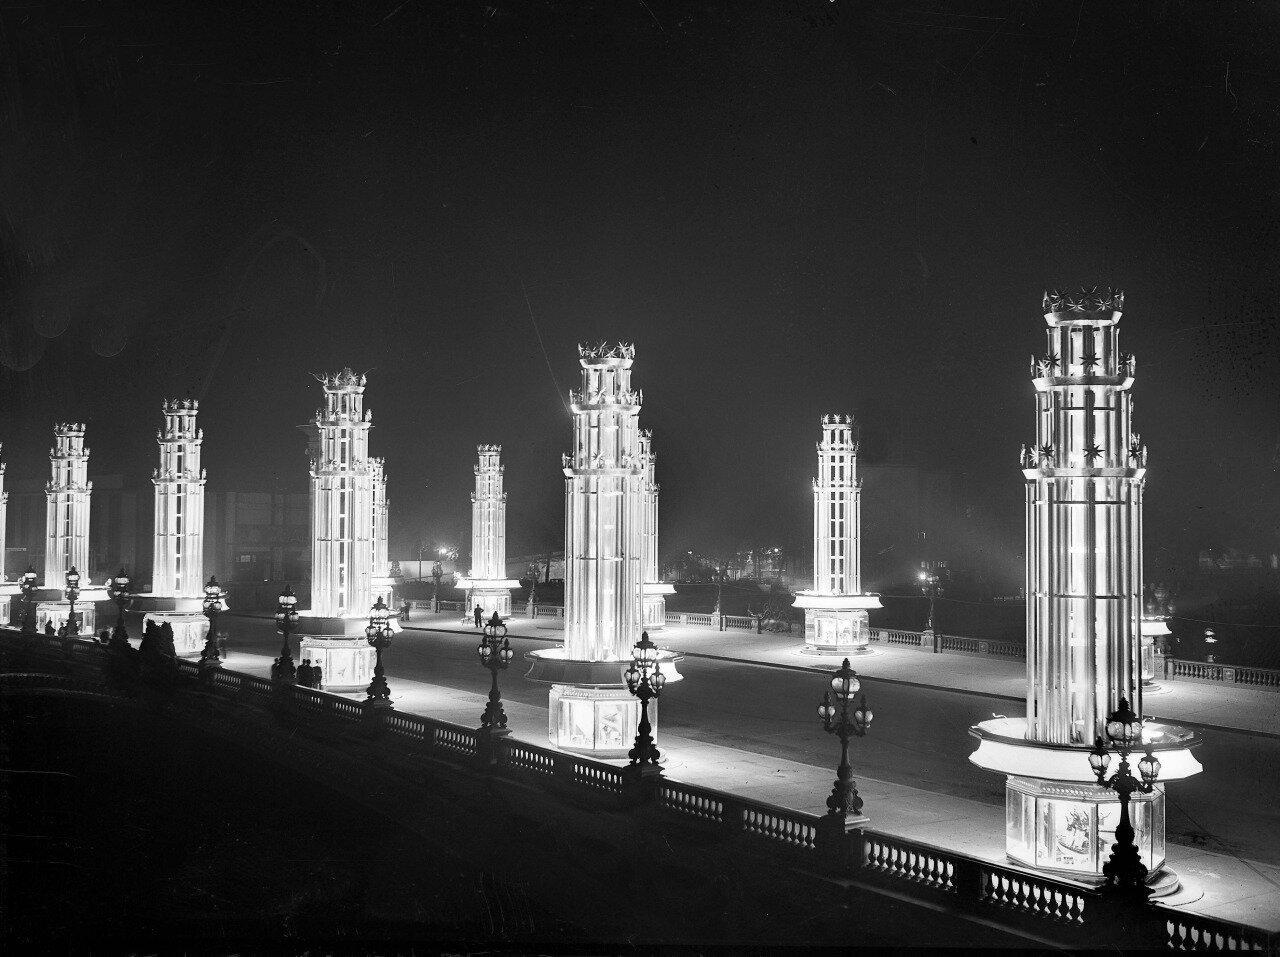 The illuminated Pont Alexandre III during the 1937 Exposition Internationale, Paris